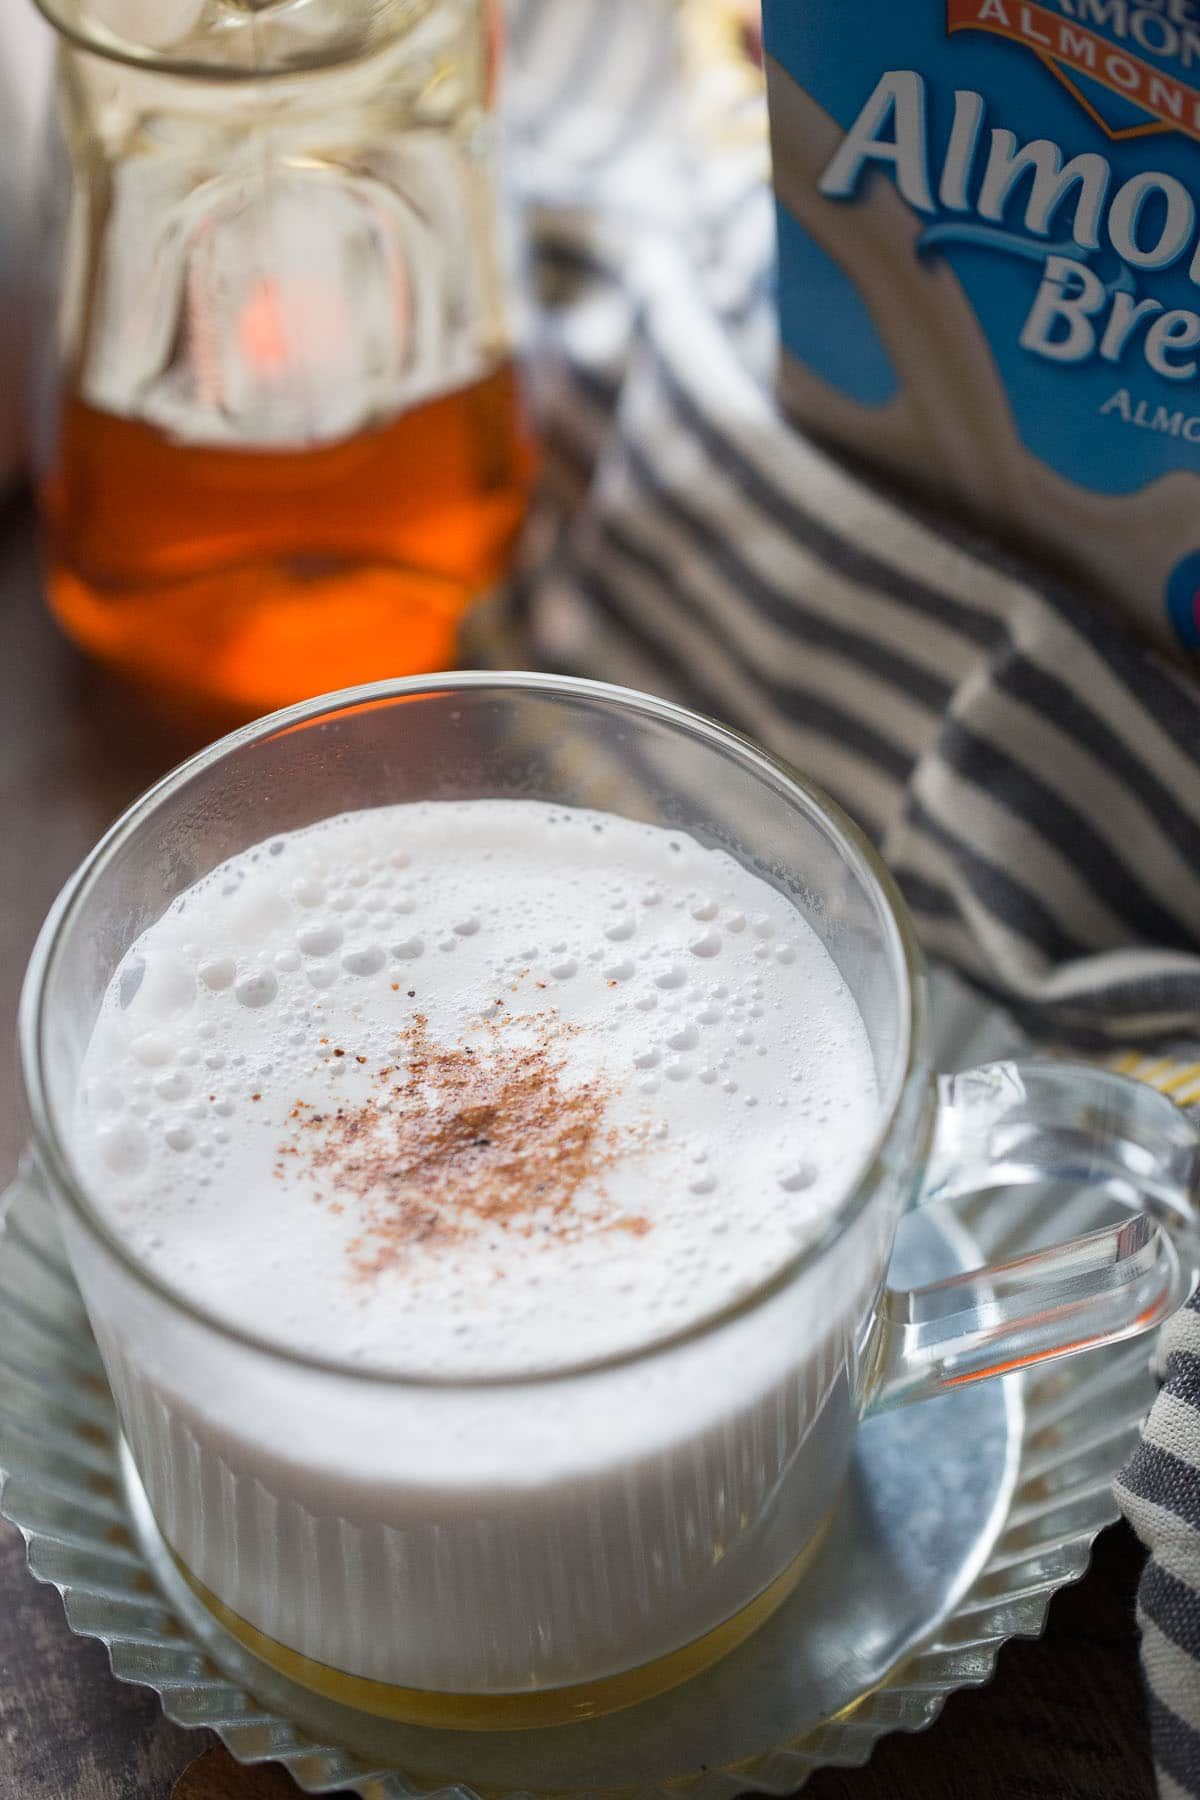 Almond milk is steamed with cinnamon, frothed and poured